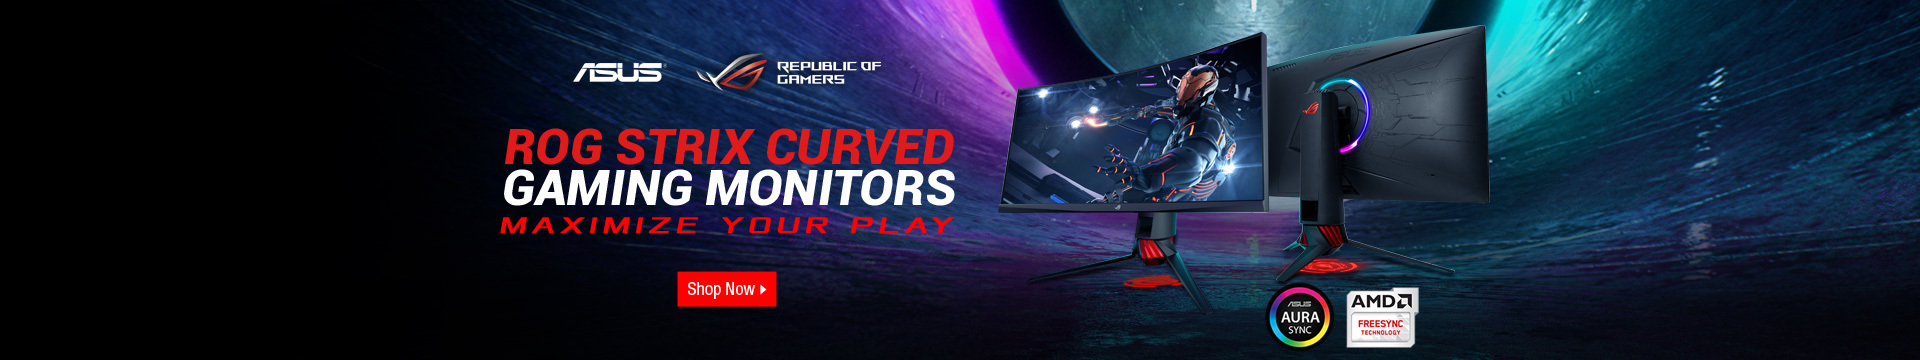 ASUS ROG Curved Monitors